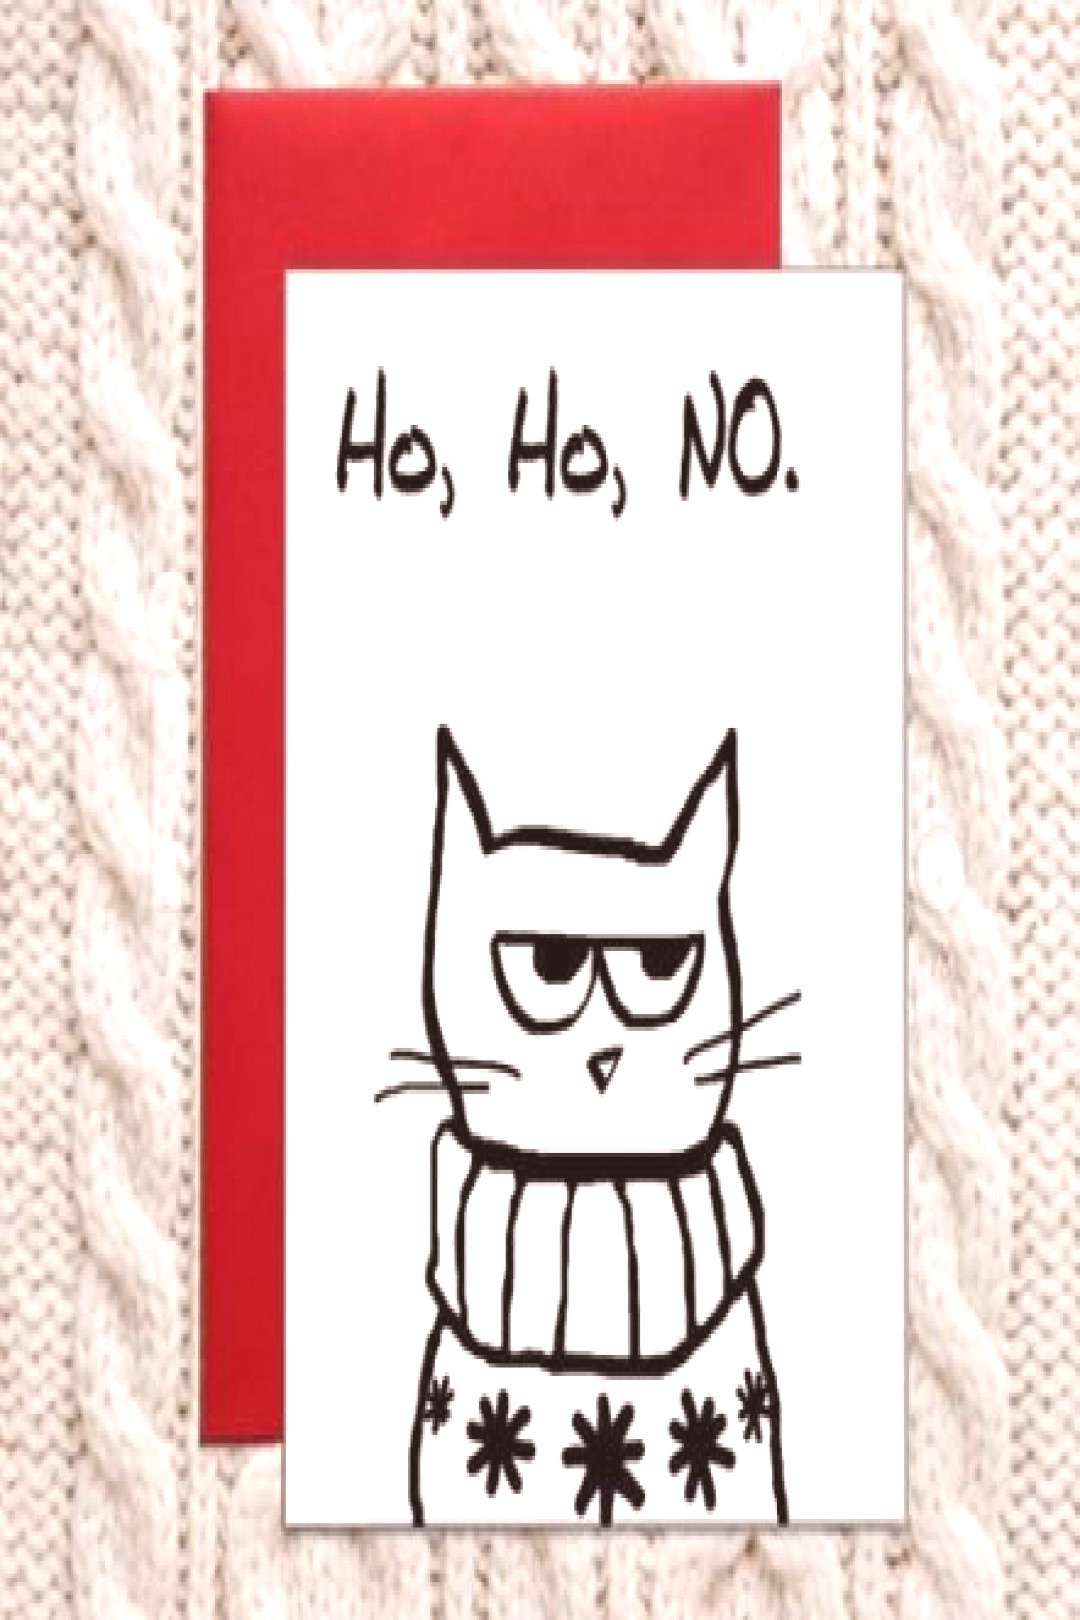 35 ideas funny cats christmas cards 35 ideas funny cats christmas cards